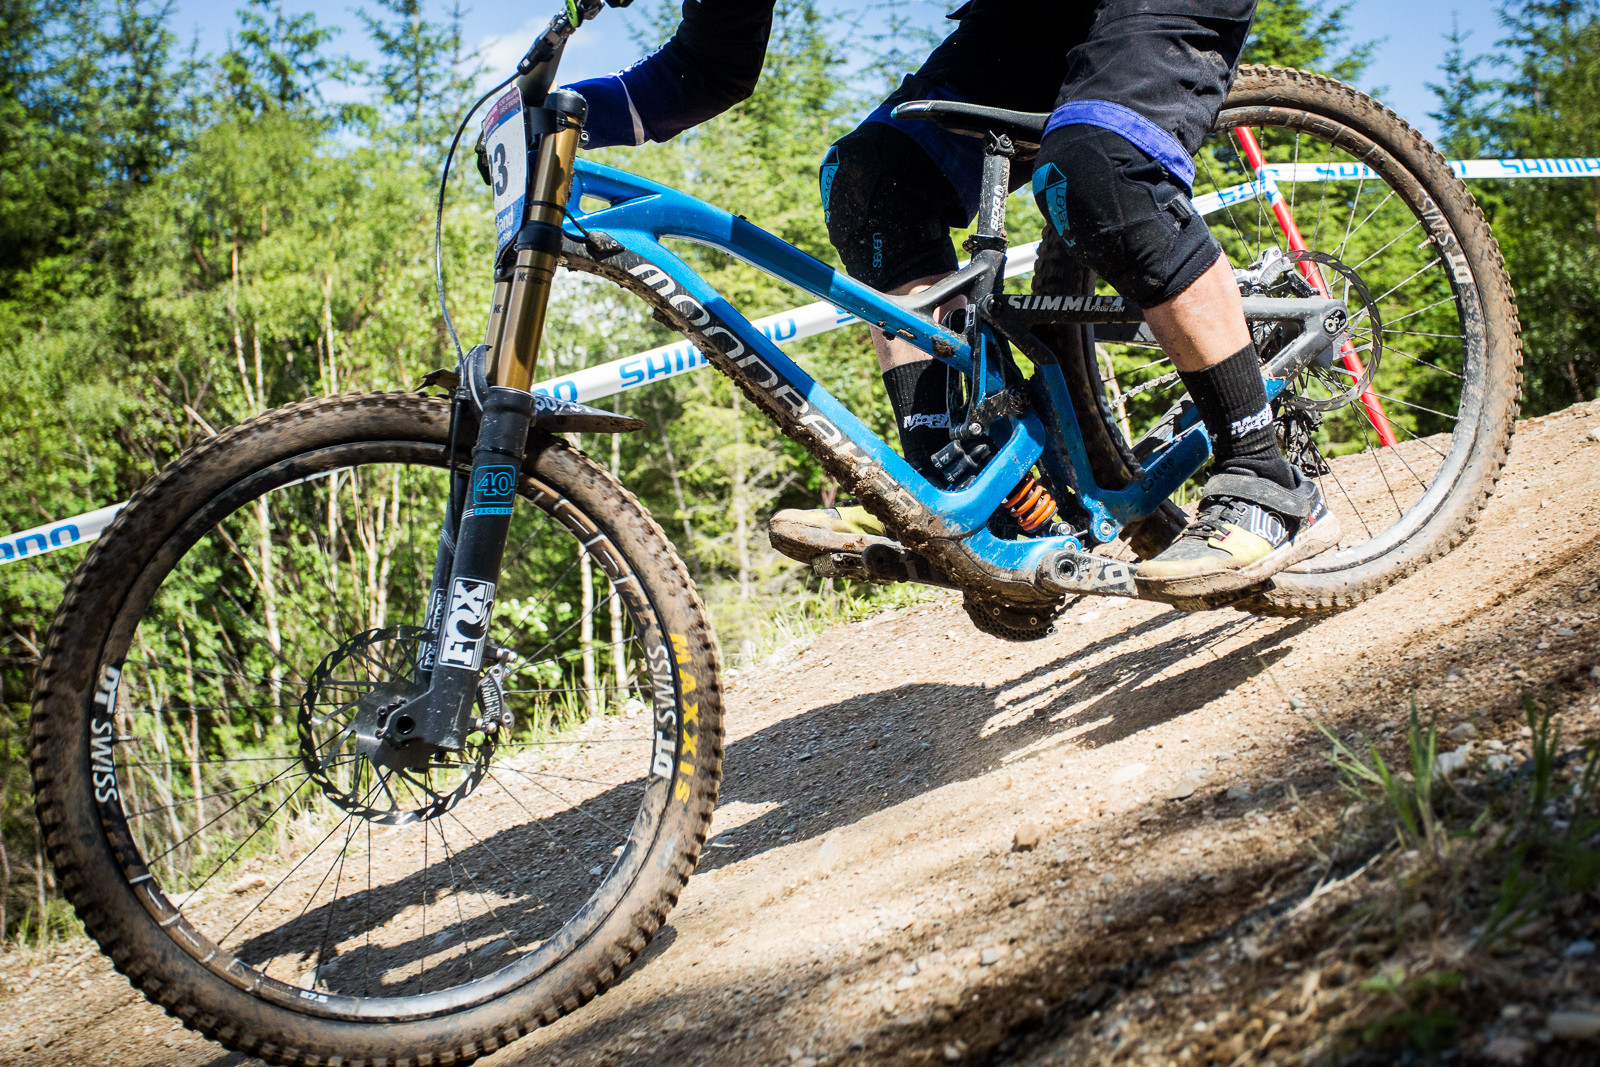 Mondraker Summum - G-Out Project, Fort William - Mountain Biking Pictures - Vital MTB